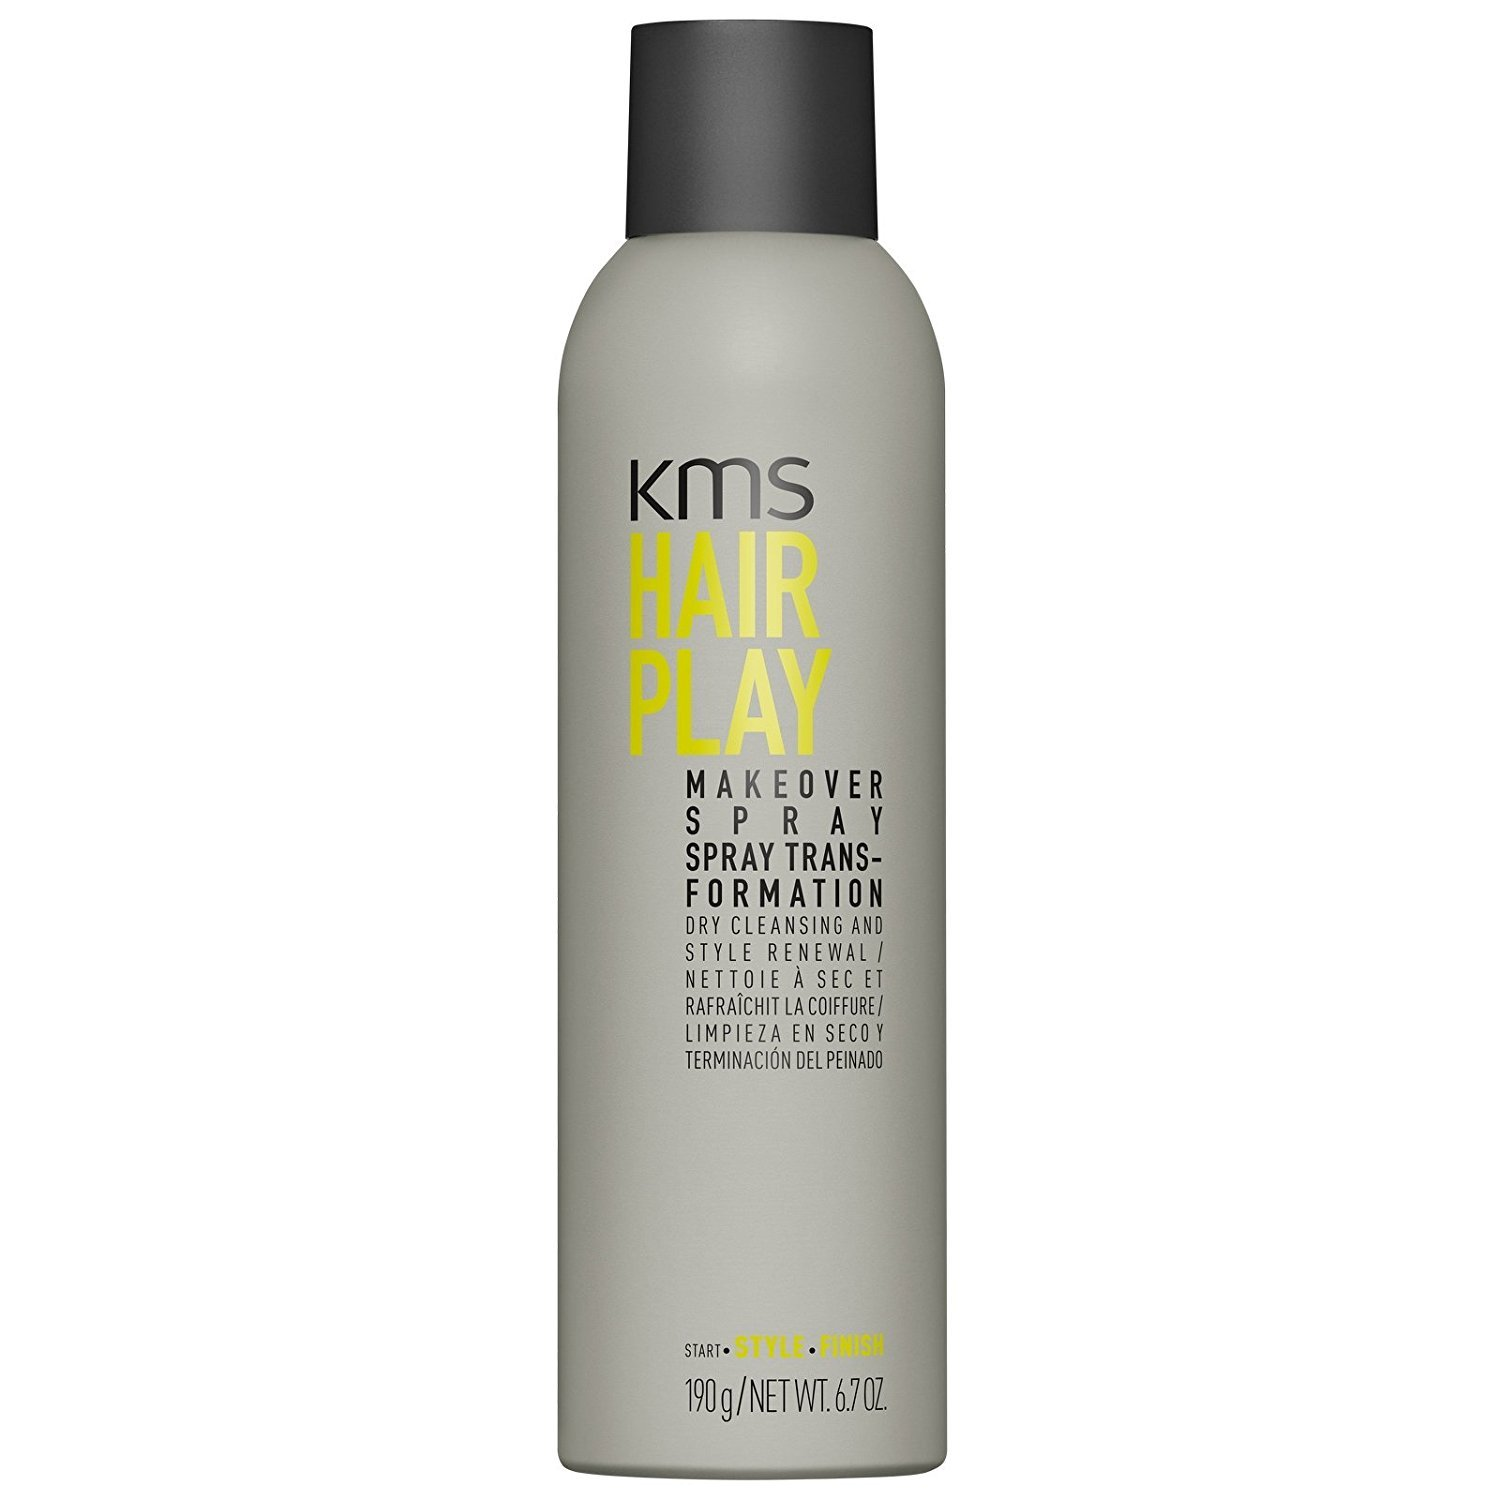 KMS California Hairplay Makeover Spray, 1er Pack (1 x 250 ml) 137096